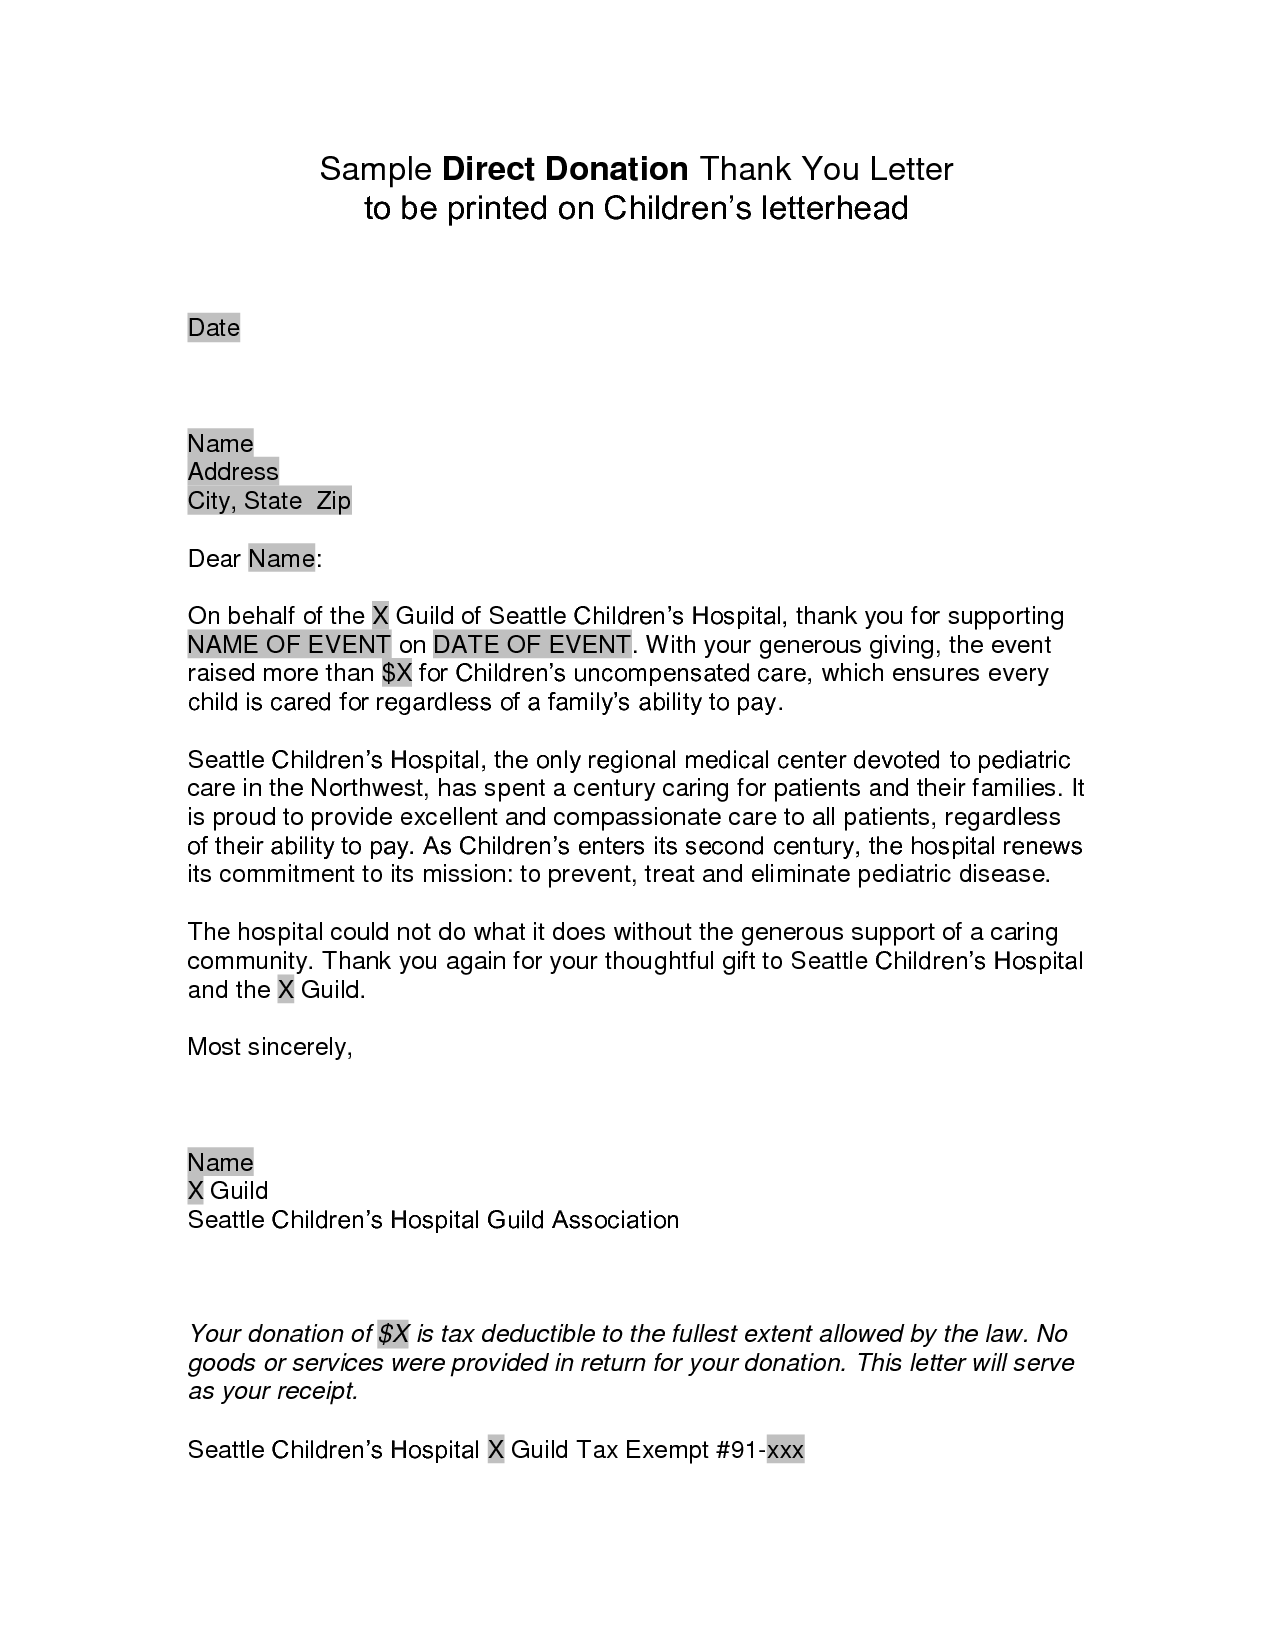 Business fundraising letter - sample fundraising letters for ...